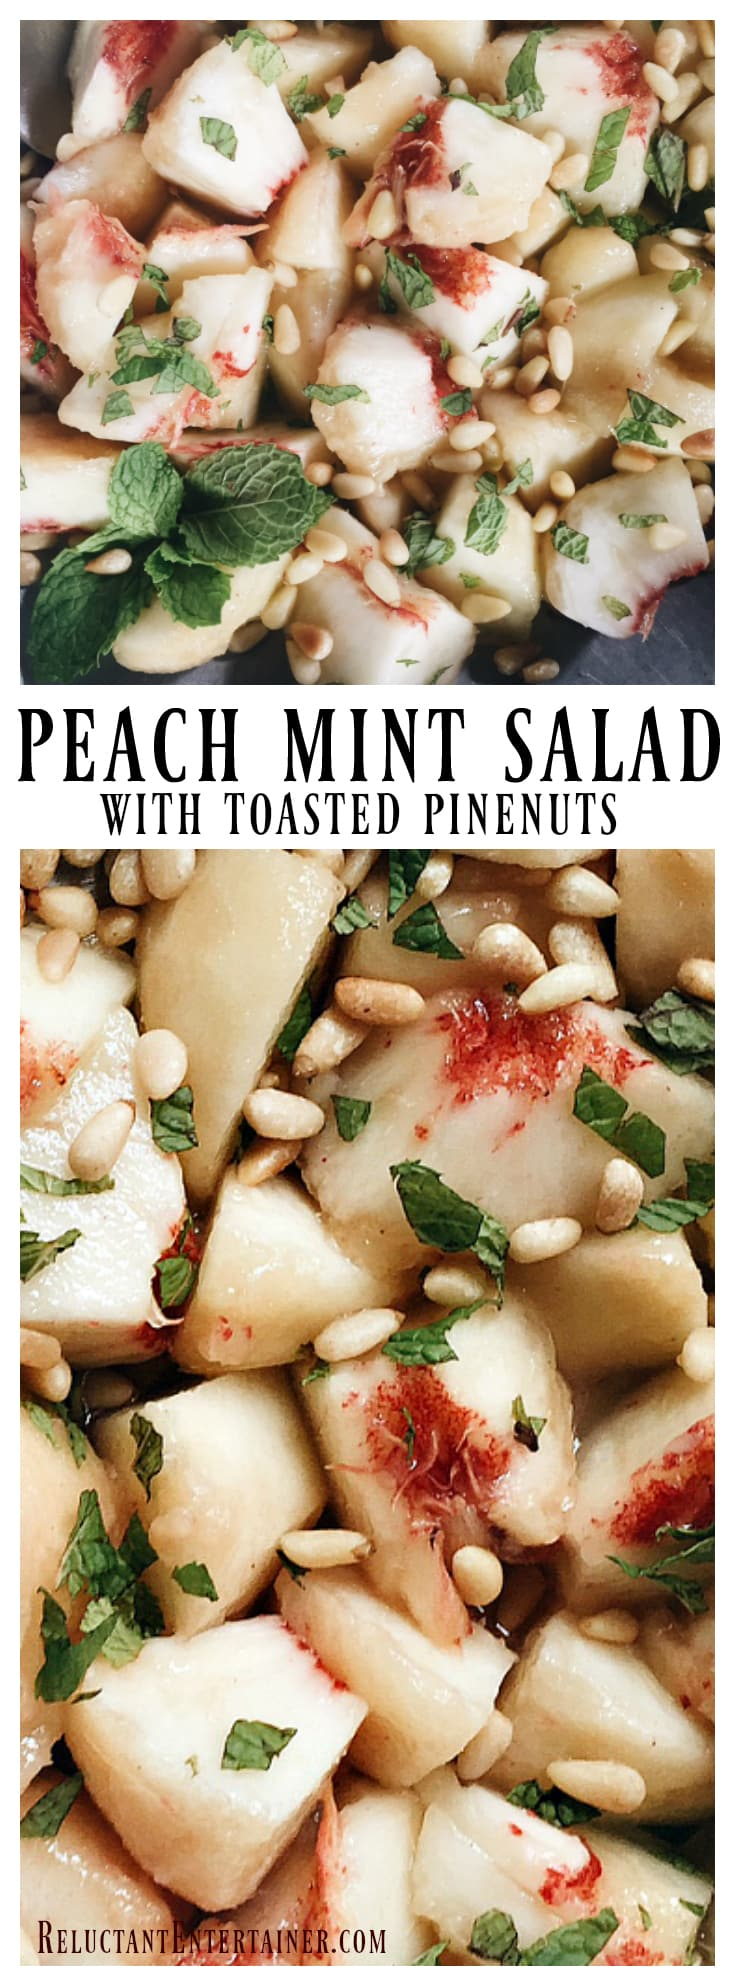 Peach Mint Salad with Toasted Pinenuts is an elegant summer salad to served, garnished with fresh mint.